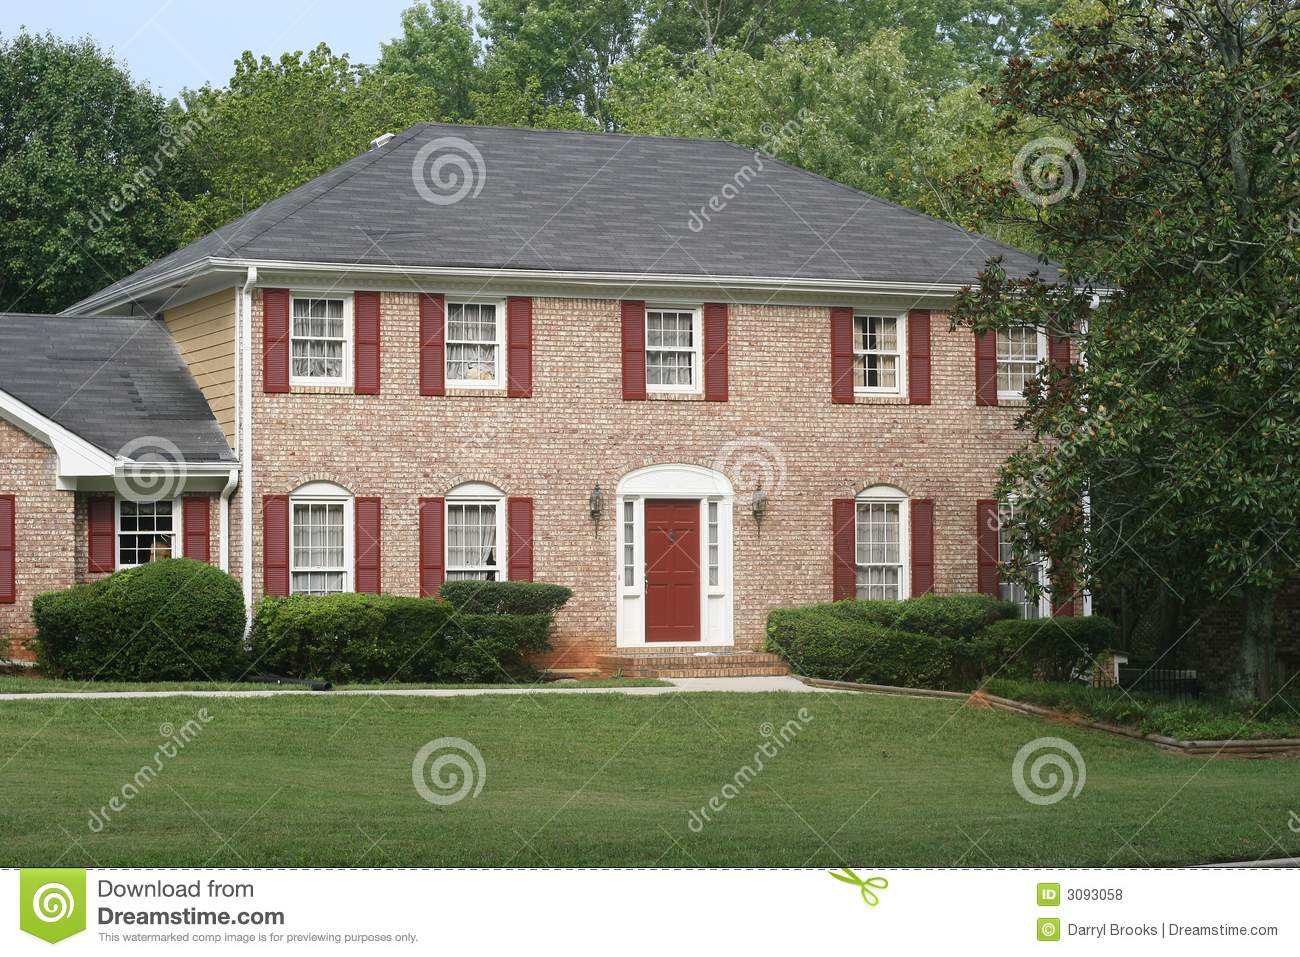 Trim colors for red brick houses - Royalty Free Stock Photo Download Brick House Red Trim